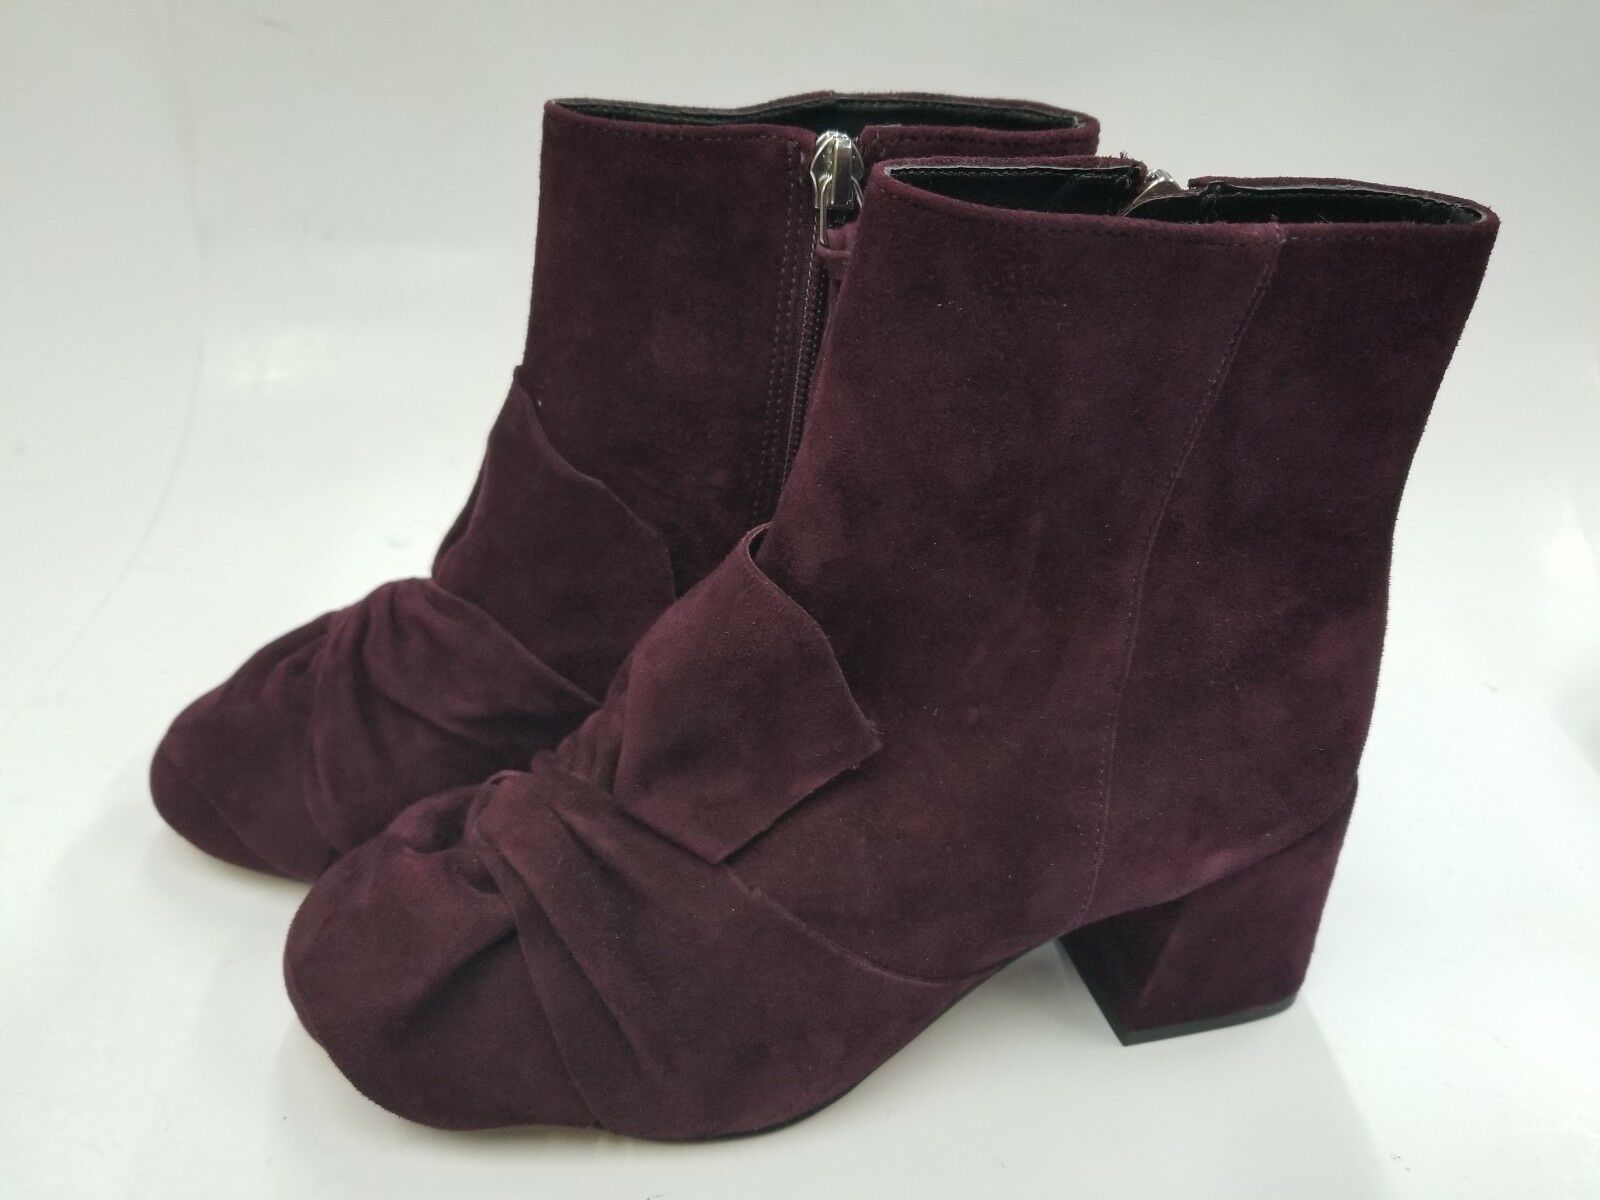 NEW REBECCA MINKOFF MAROON SUEDE ANKLE BOOTS SIZE 6